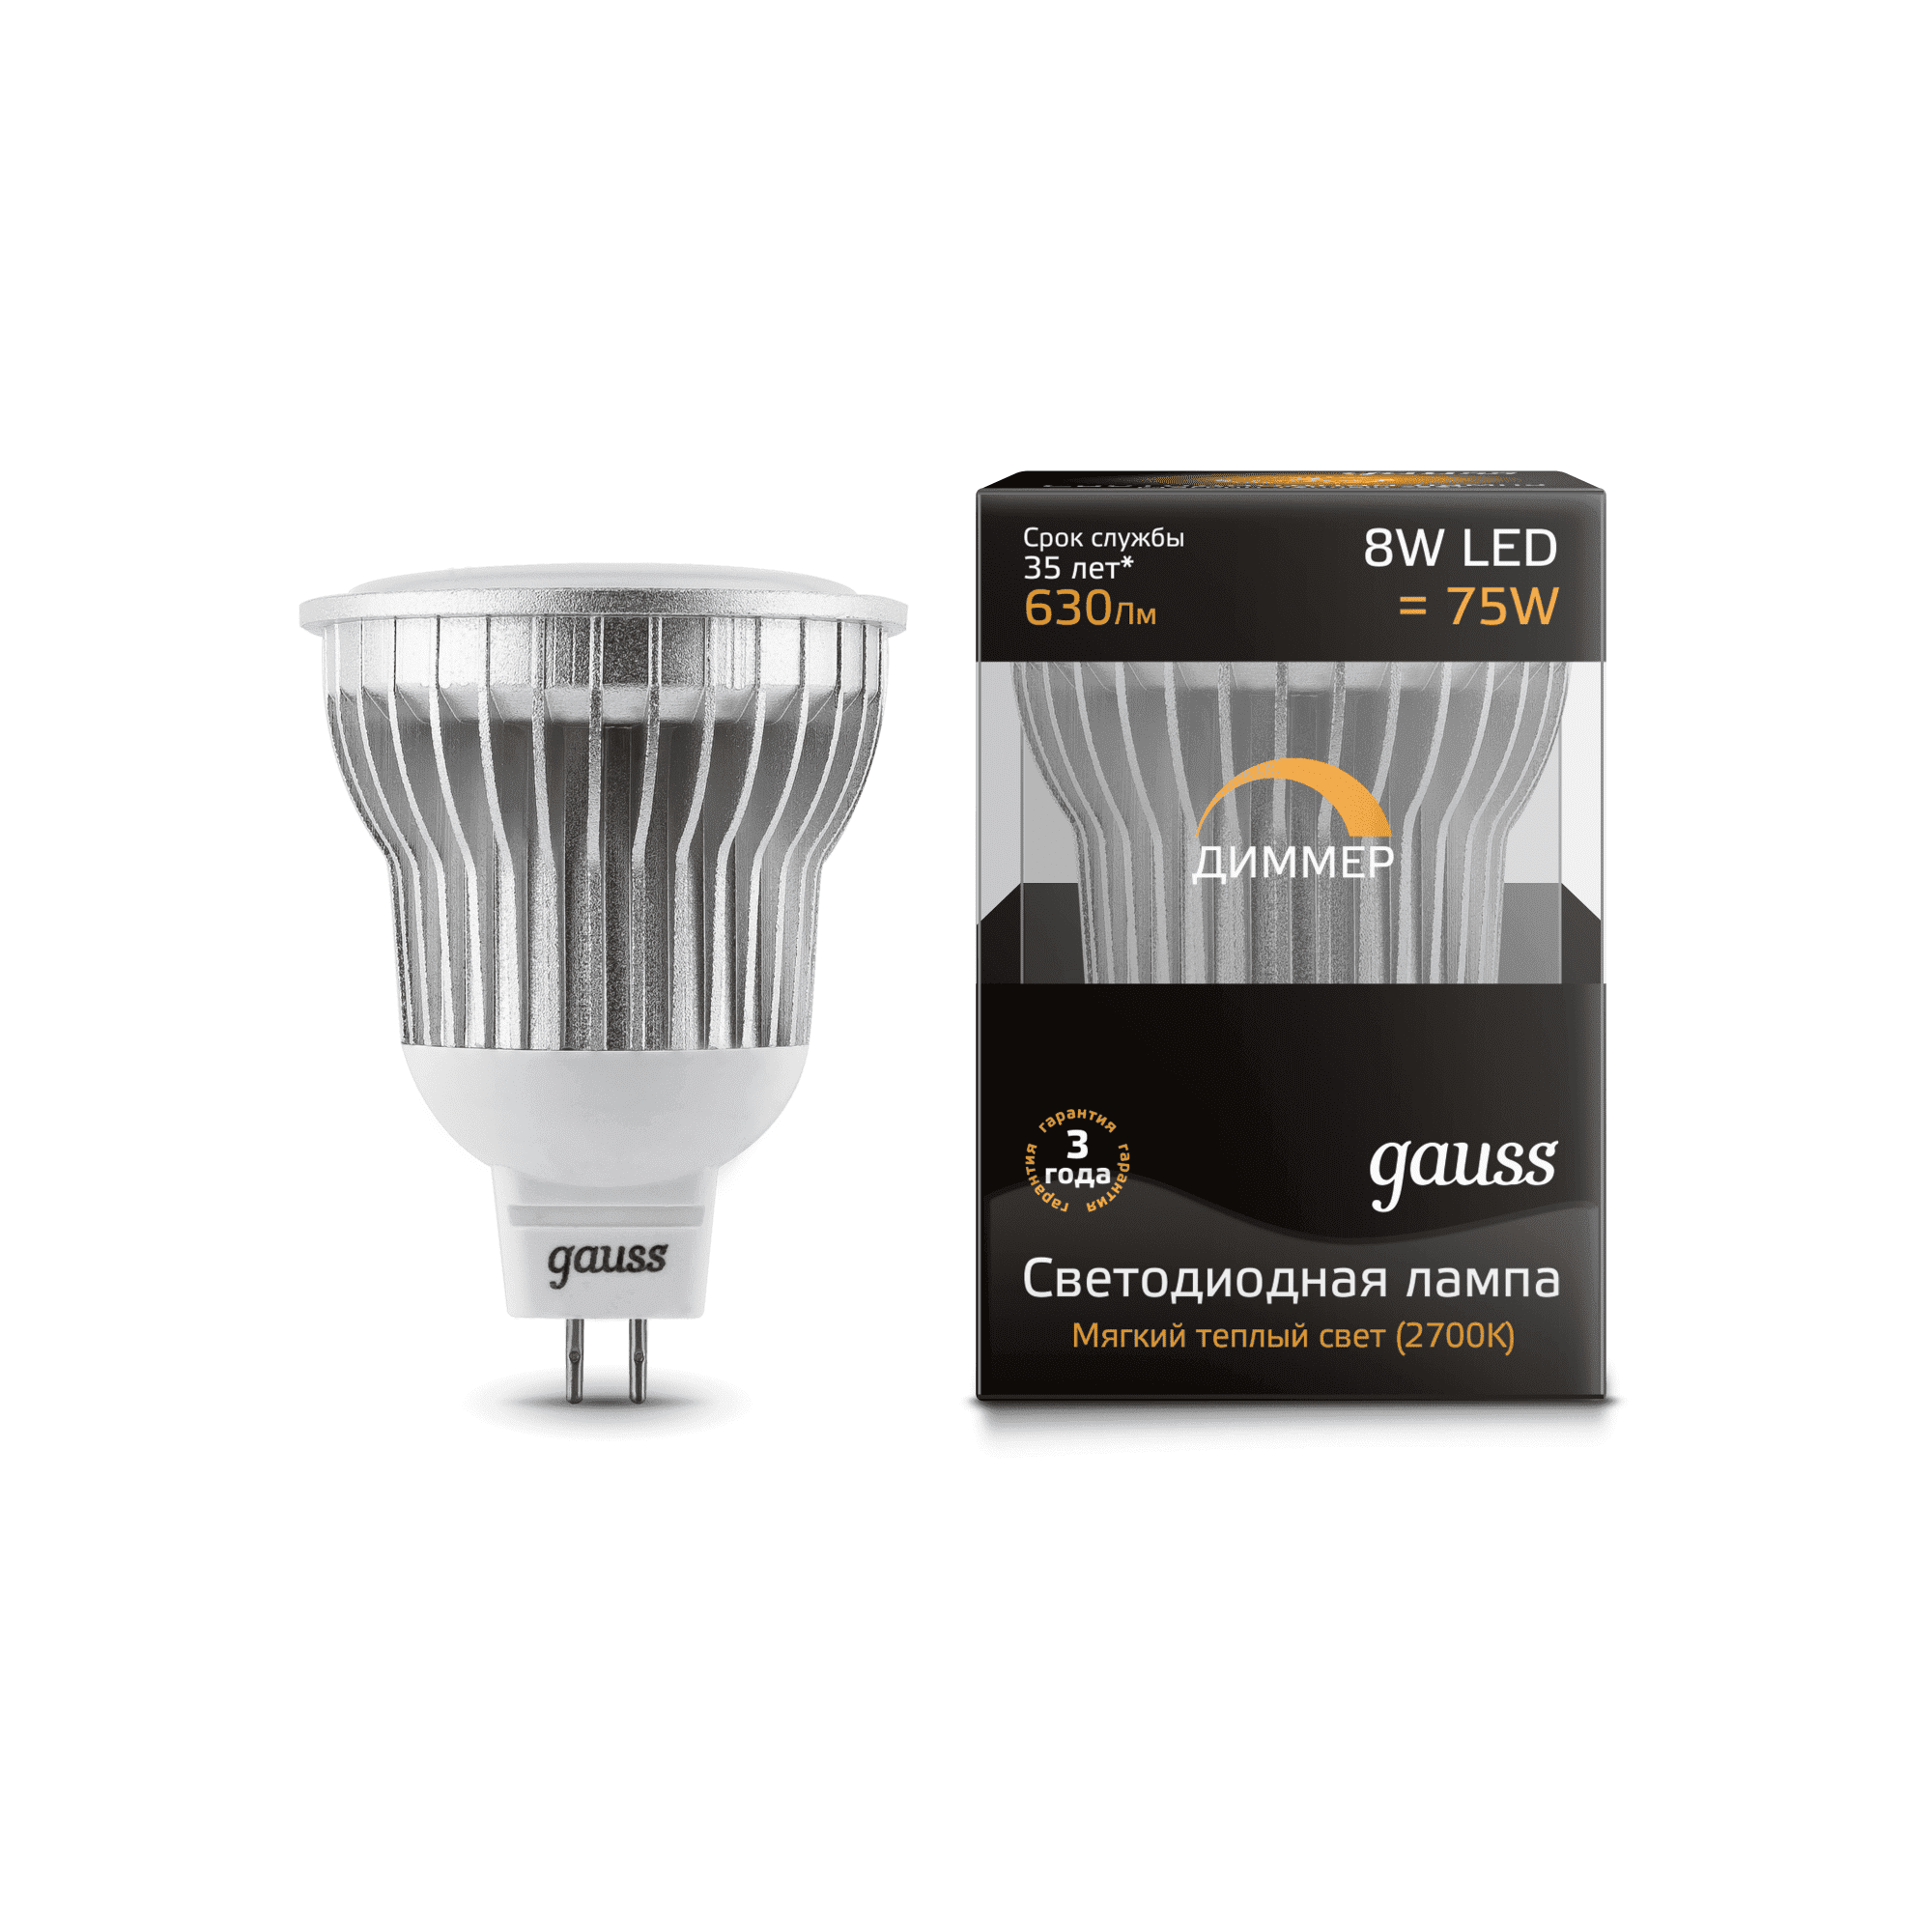 Gauss LED MR16 GU5.3-dim 8W SMD AC220-240V 2700K диммируемая арт. EB101105108-D